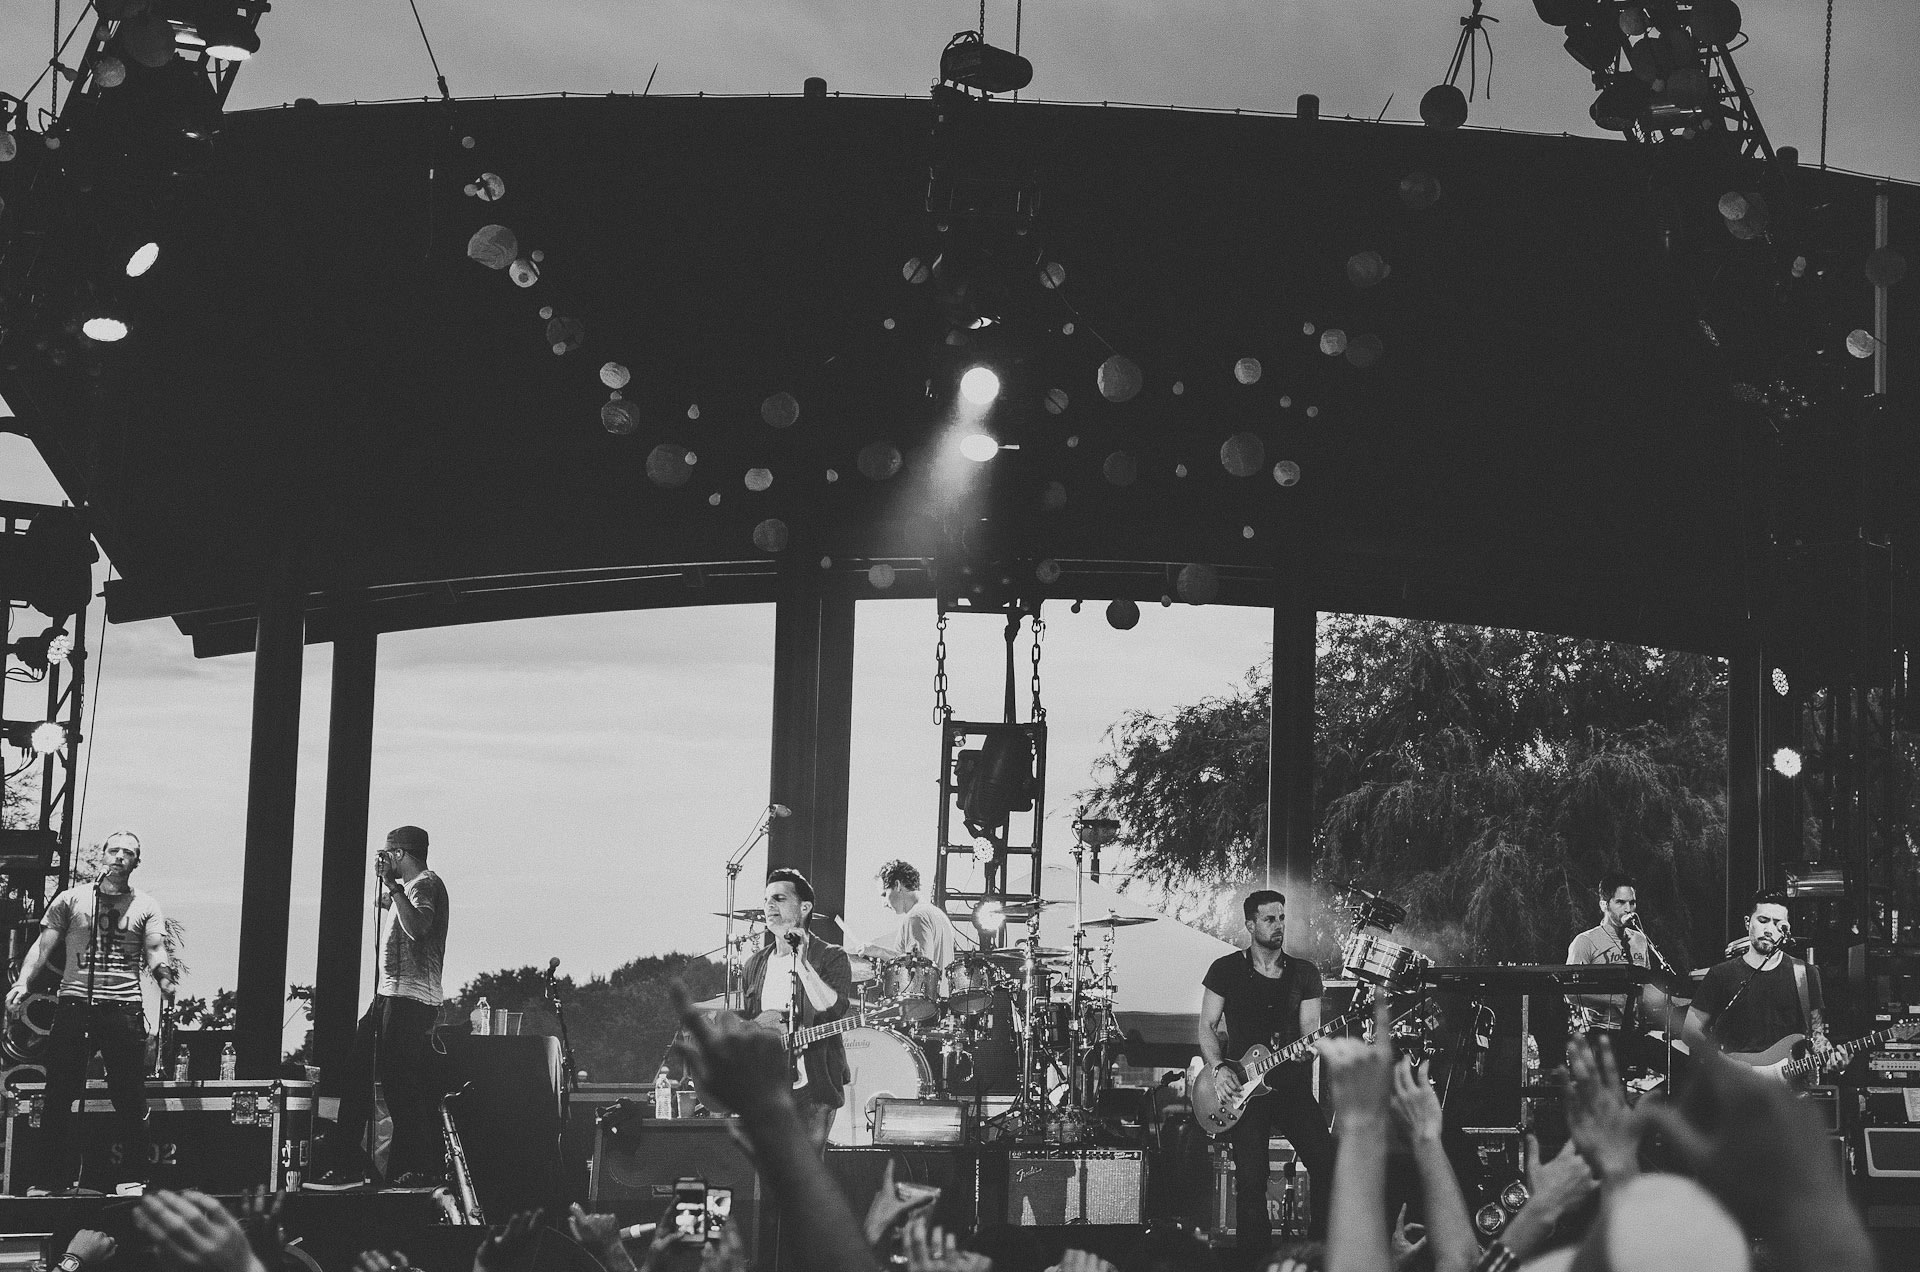 OAR_live_lawn_white_river_state_park_indianapolis_2013-34